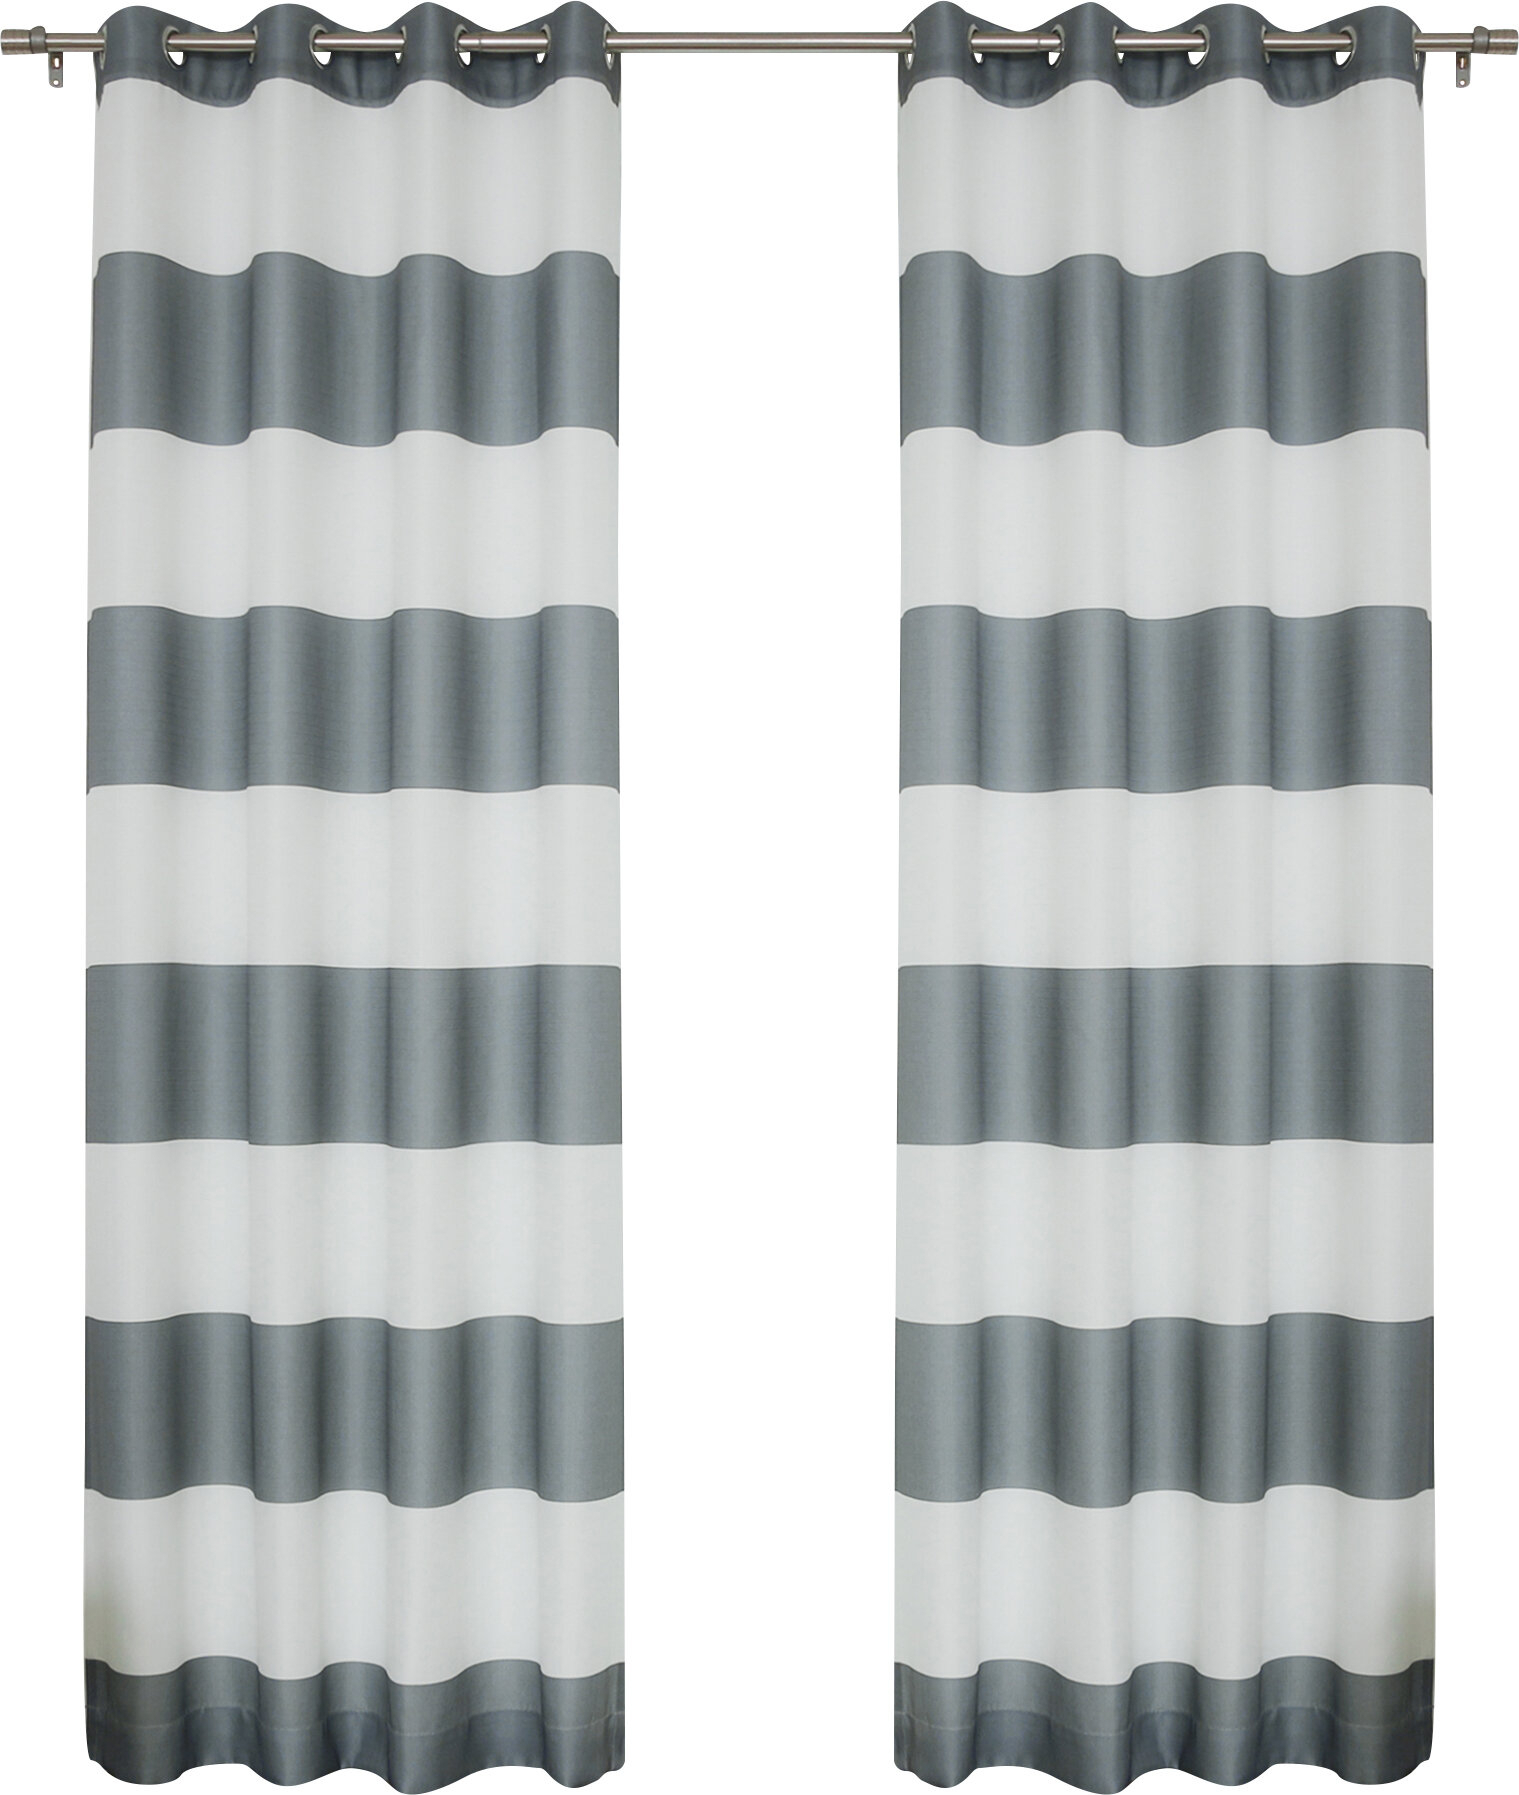 Paityn Rugby Curtain Panels With Regard To Inez Patio Door Window Curtain Panels (View 10 of 20)